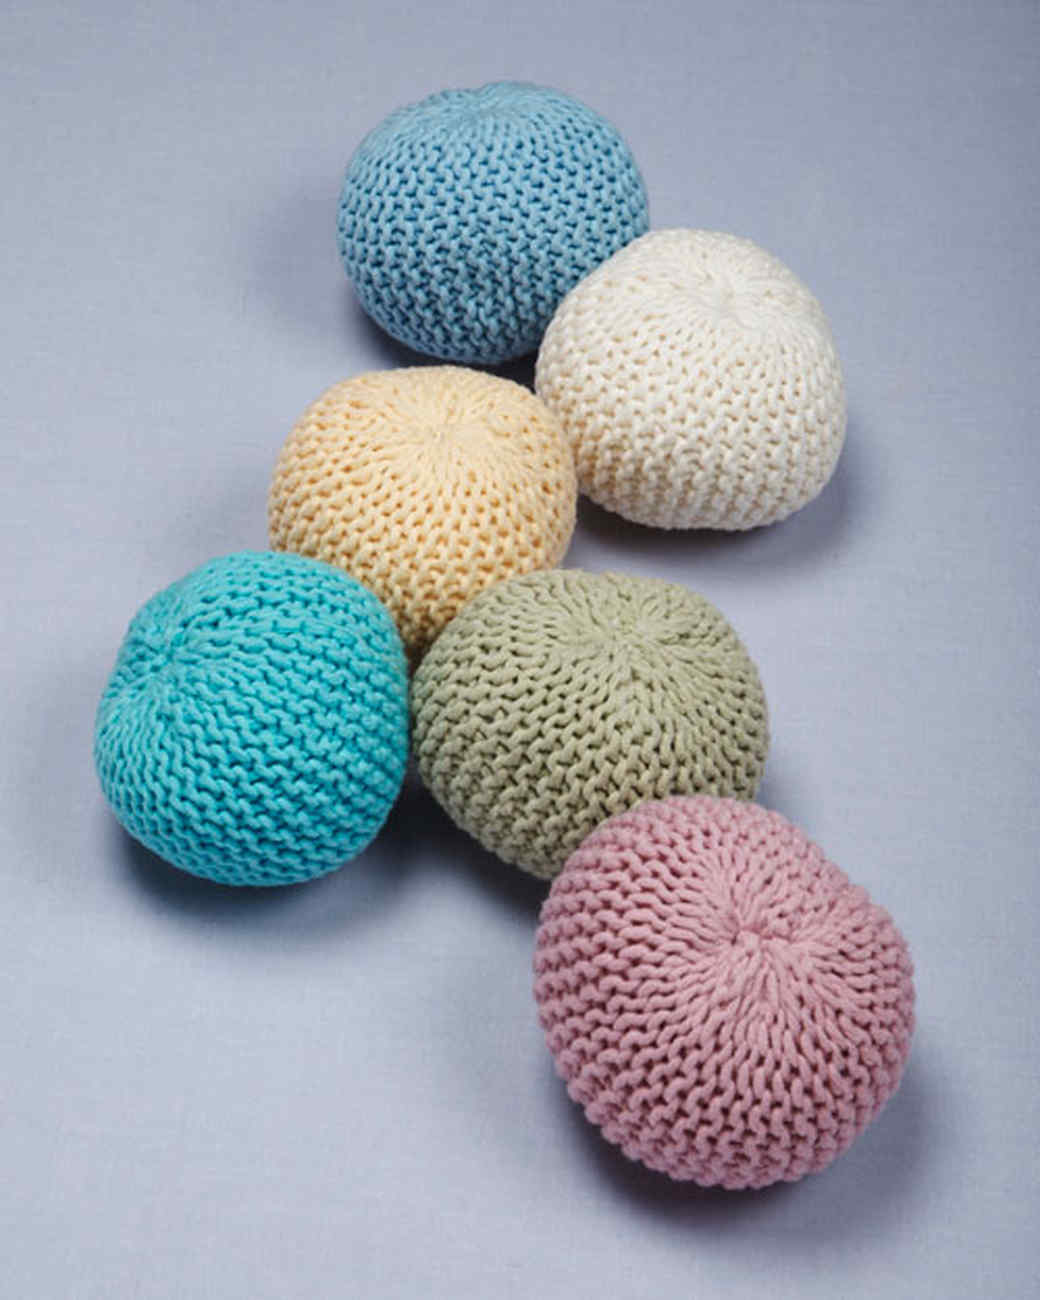 home-shopping-net-loom-knit-generic-balls.jpg